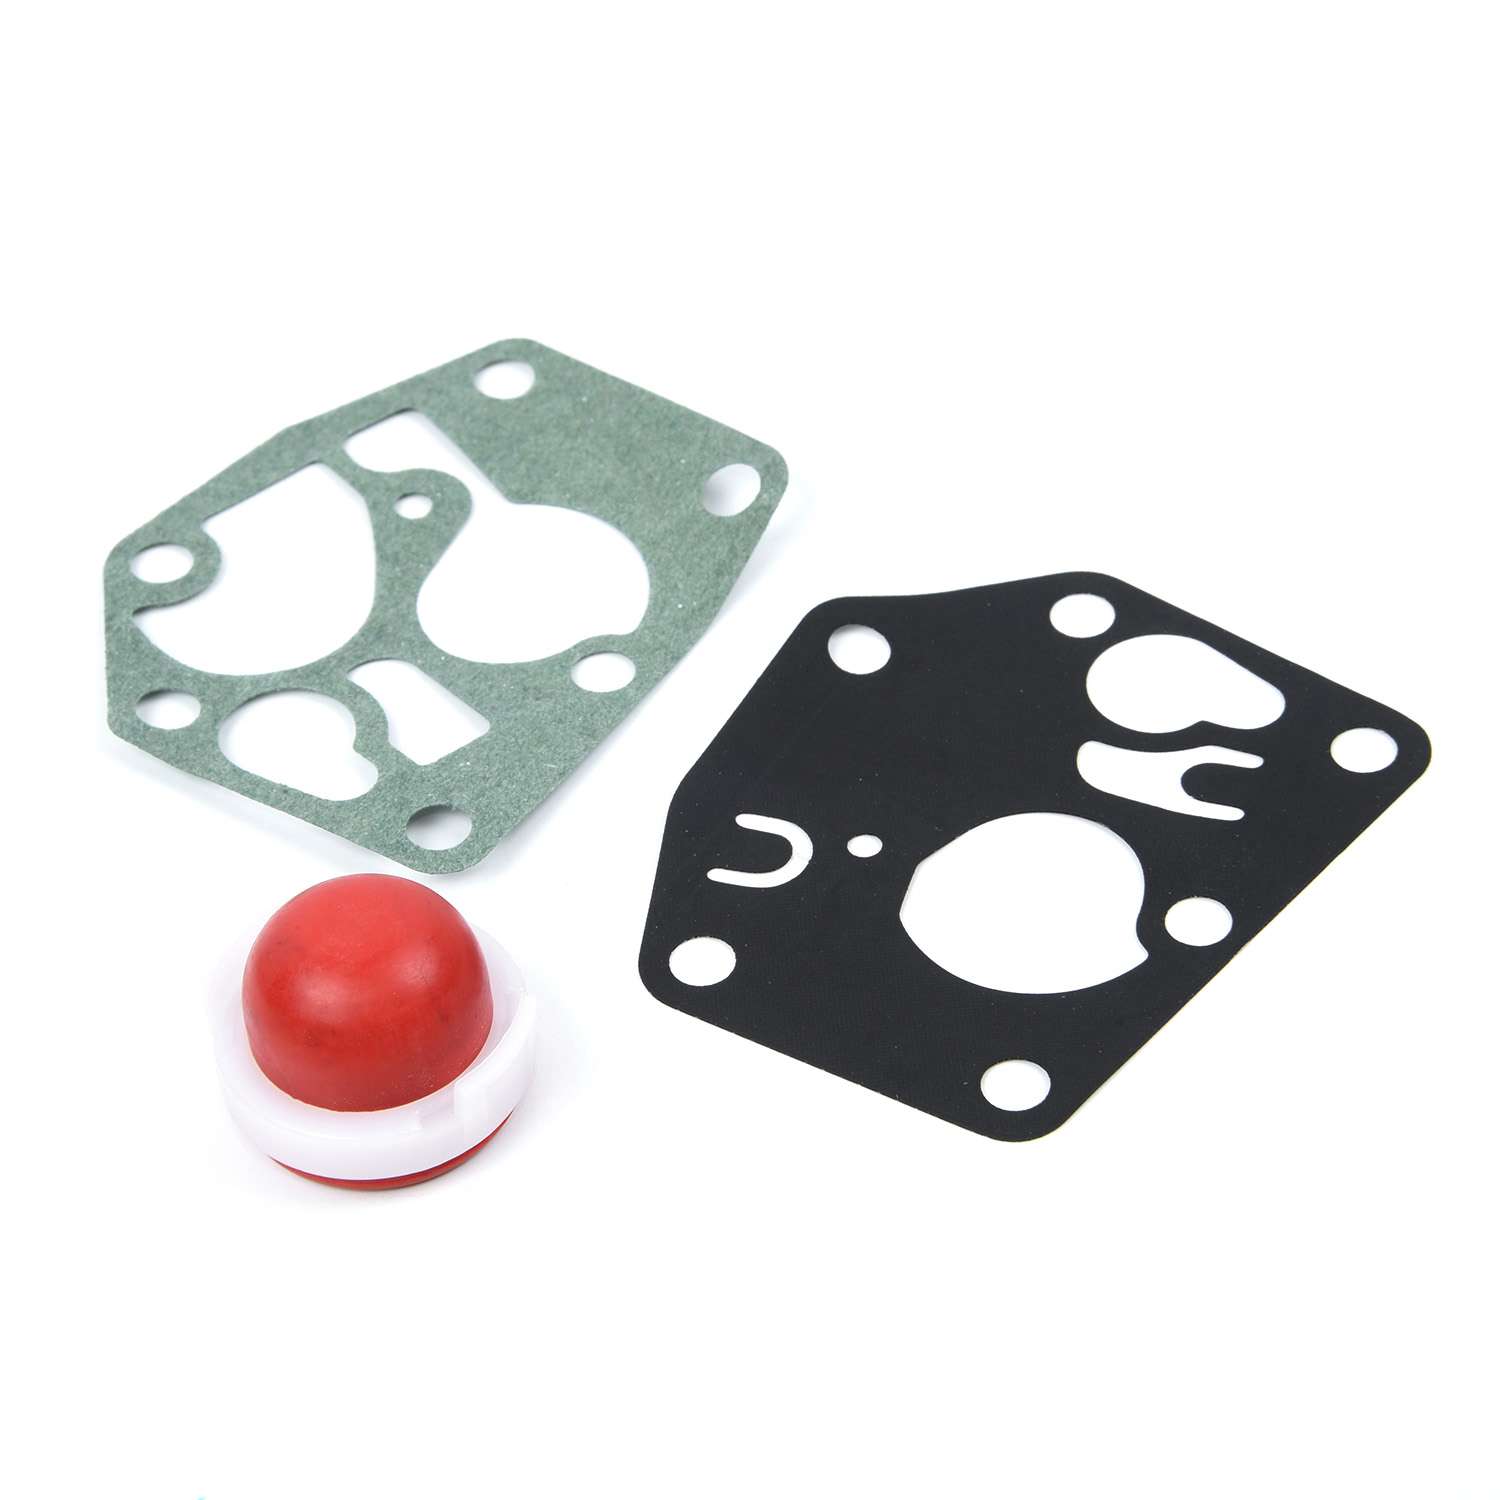 Carb Diaphragm Kit Replaces/Carburetor 495770 698369 <font><b>795083</b></font> <font><b>Briggs</b></font> 95900 281028 image